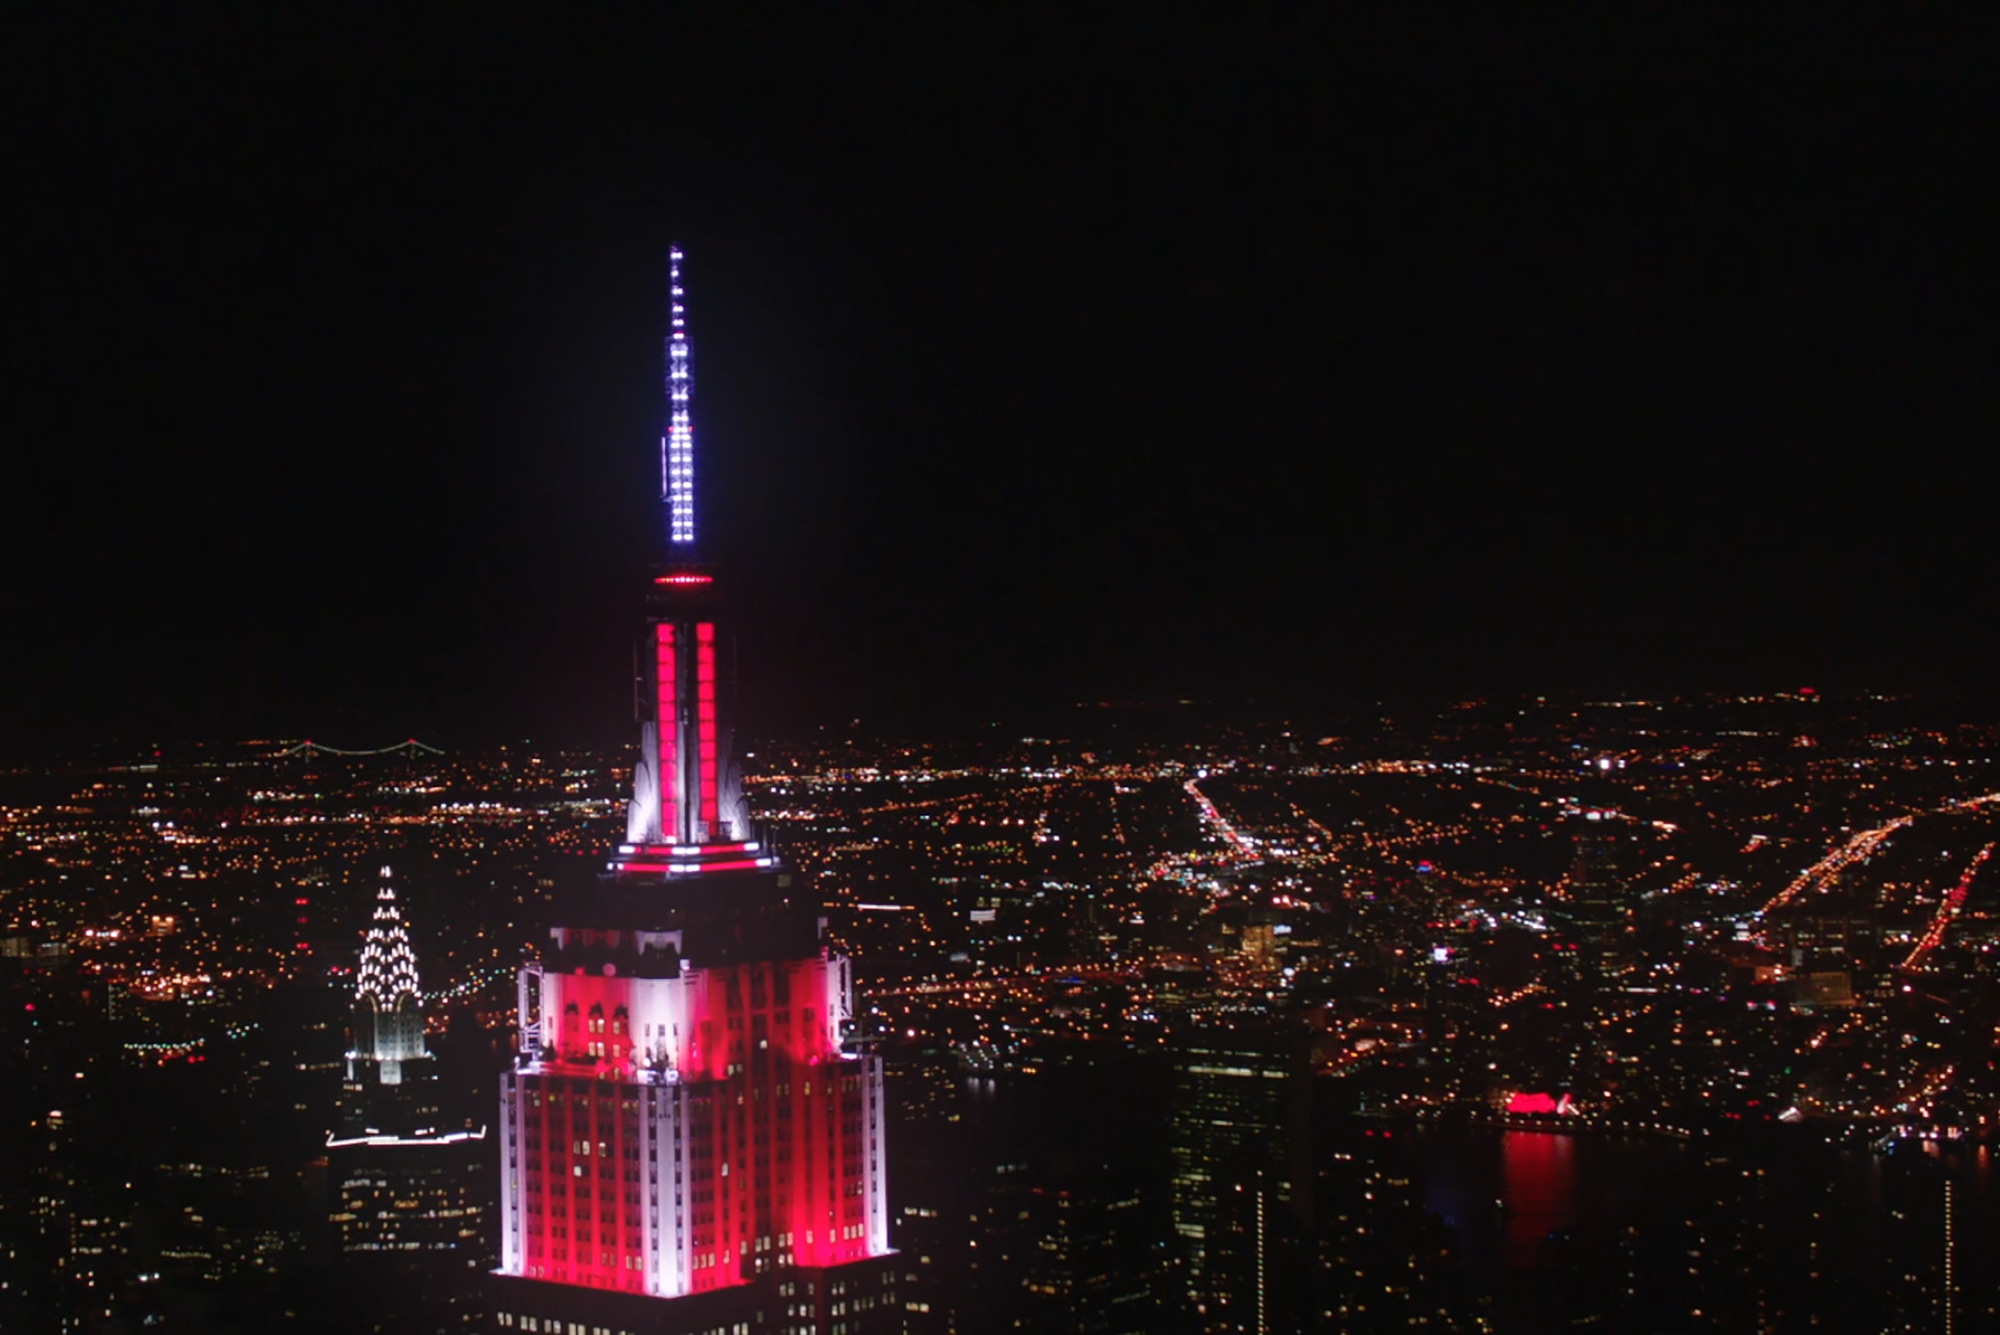 Juengling's lighting work on the Empire State Building. The skyscraper is lit up in red and white.